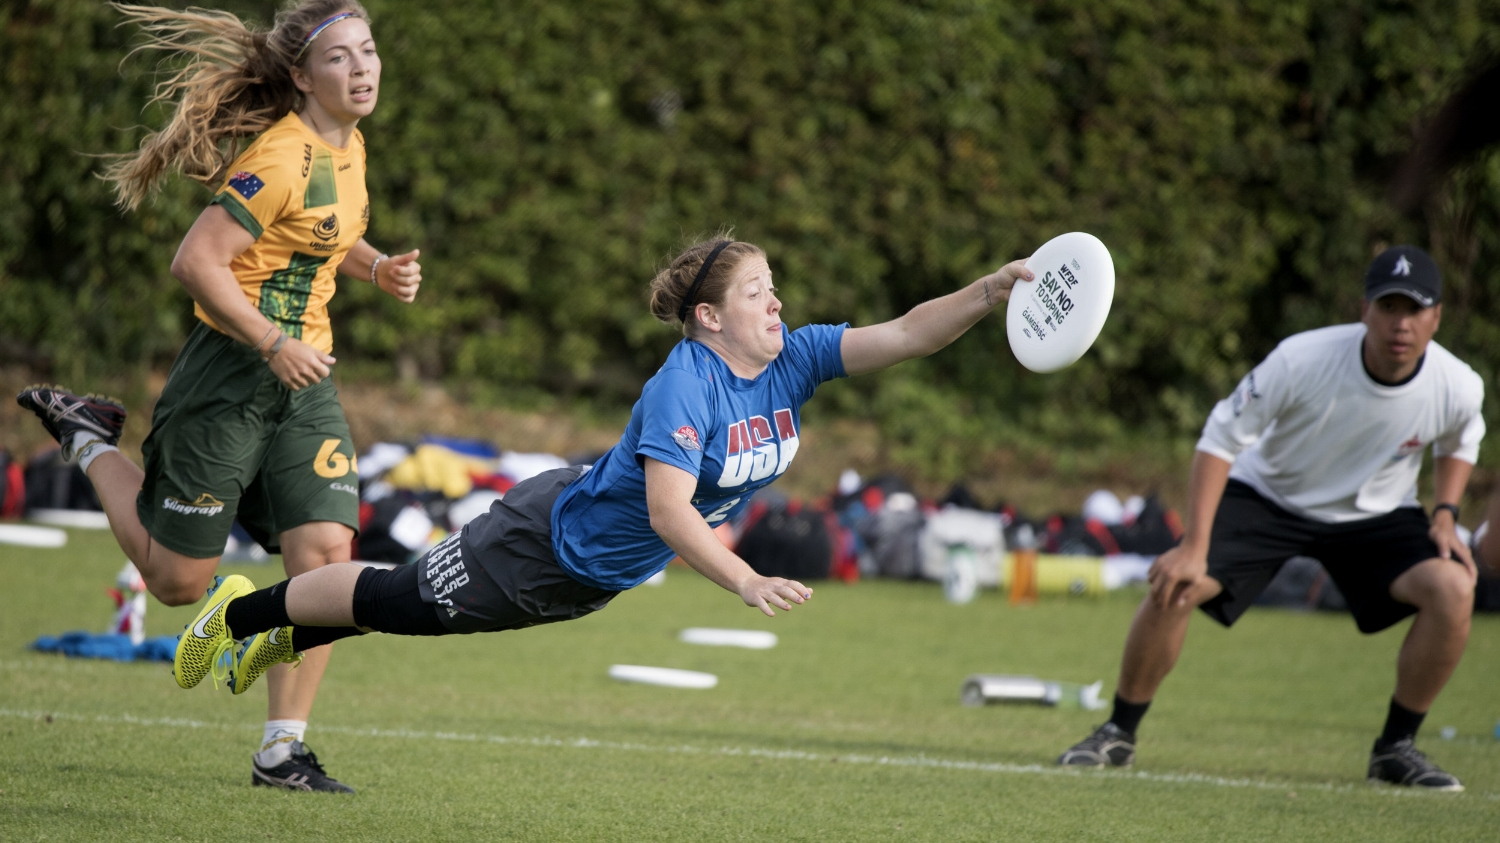 Big layout grab from Shofner during the 2015 U-23s semifinals against Australia. (Jolie Lang,  UltiPhotos )